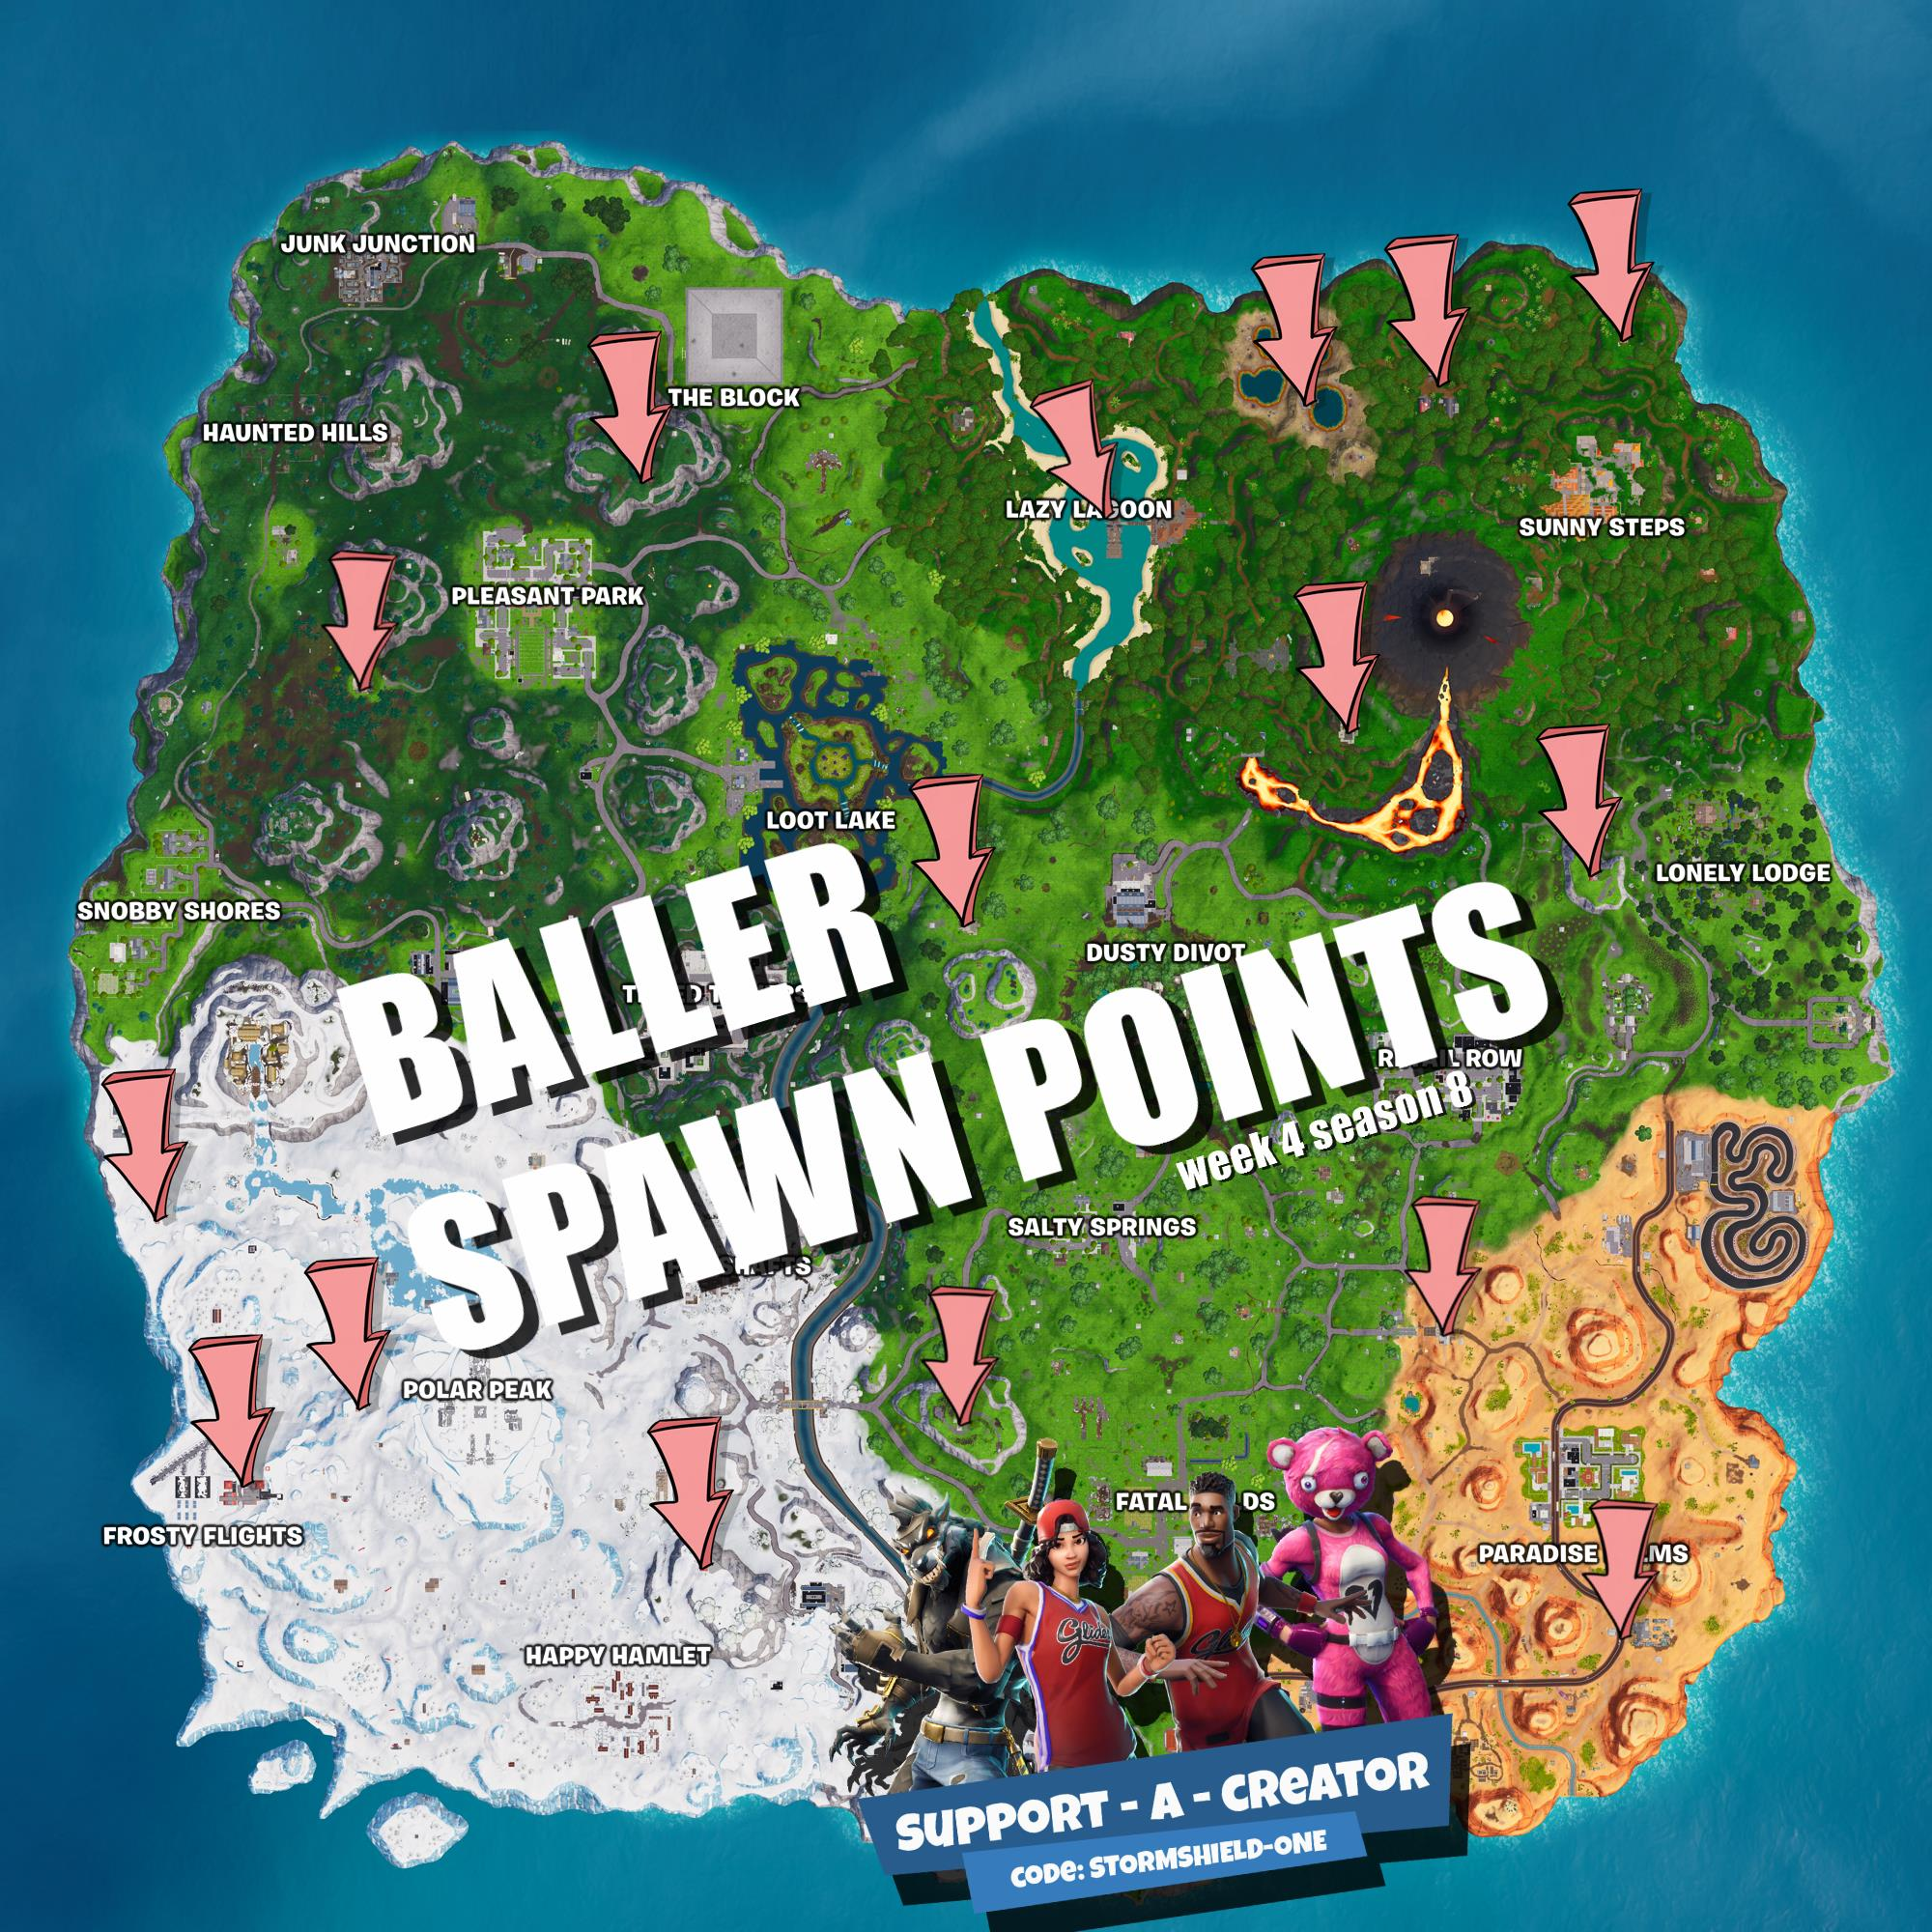 click to embiggen - baller spawn fortnite